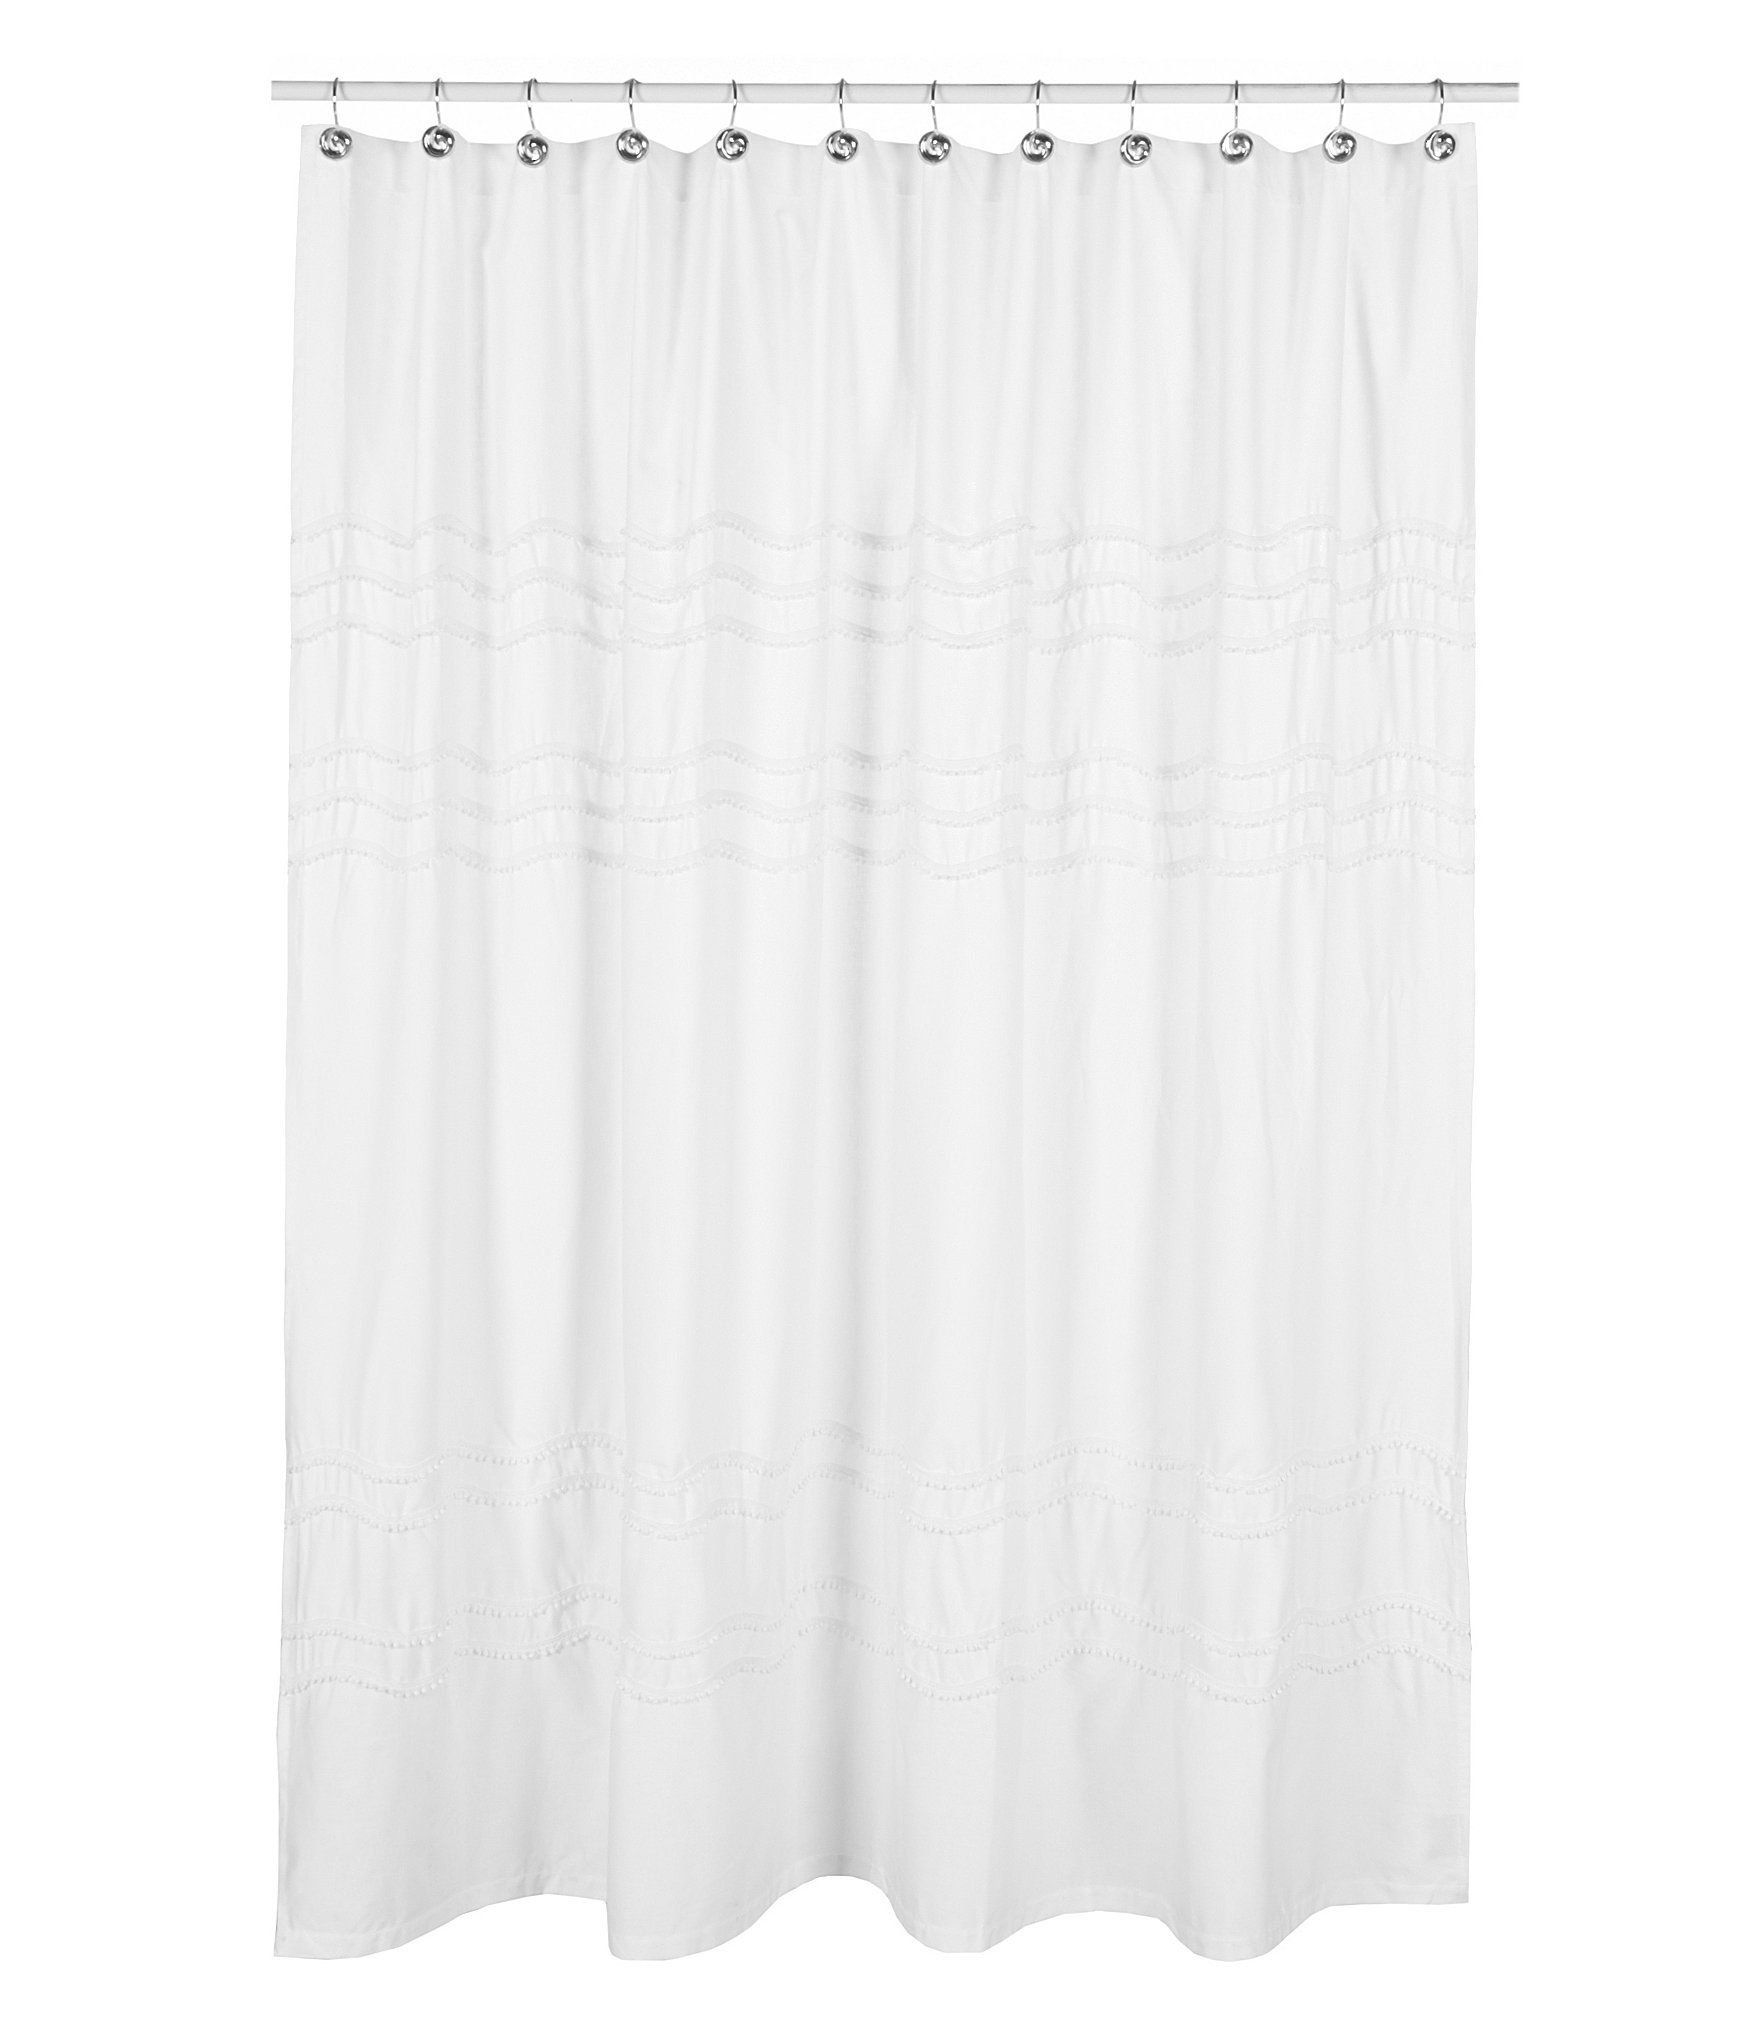 Shop For Southern Living Chantilly Chevron Pom Pom Linen Shower